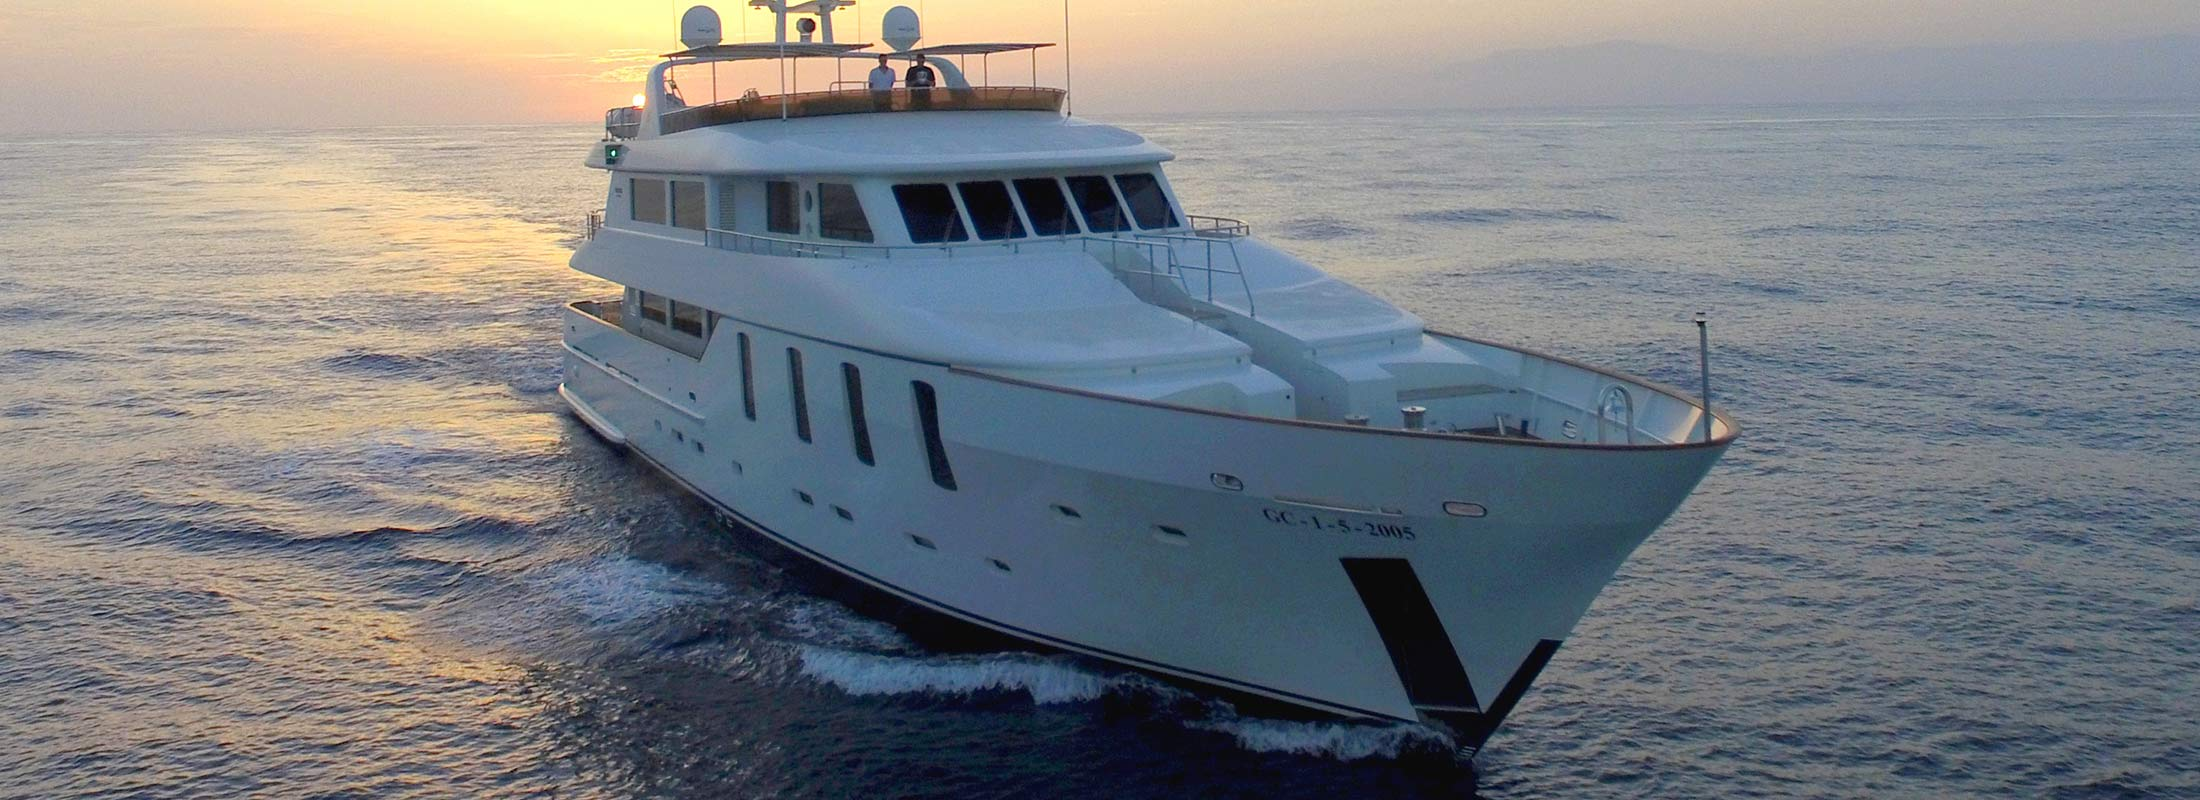 Silentworld Motor Yacht for Charter Cambodia Vietnam Great Barrier Reef slider 2